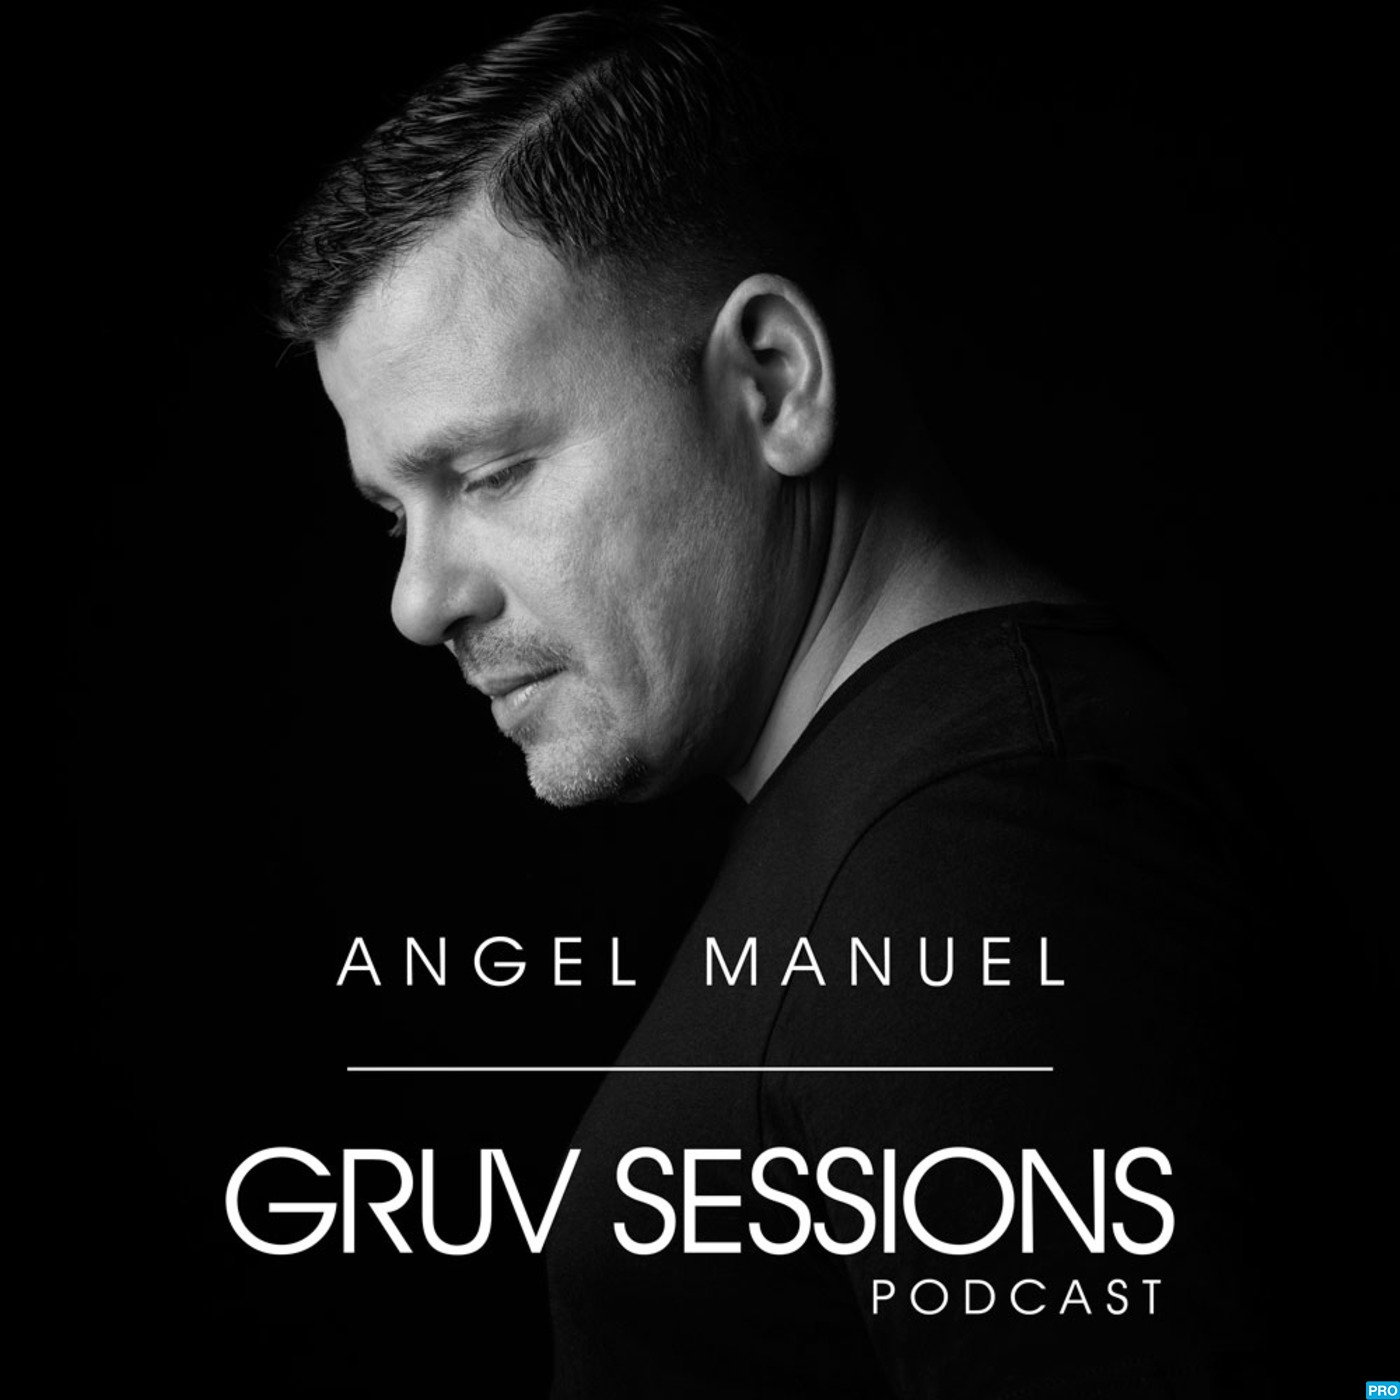 Angel Manuel Gruv Sessions Podcast